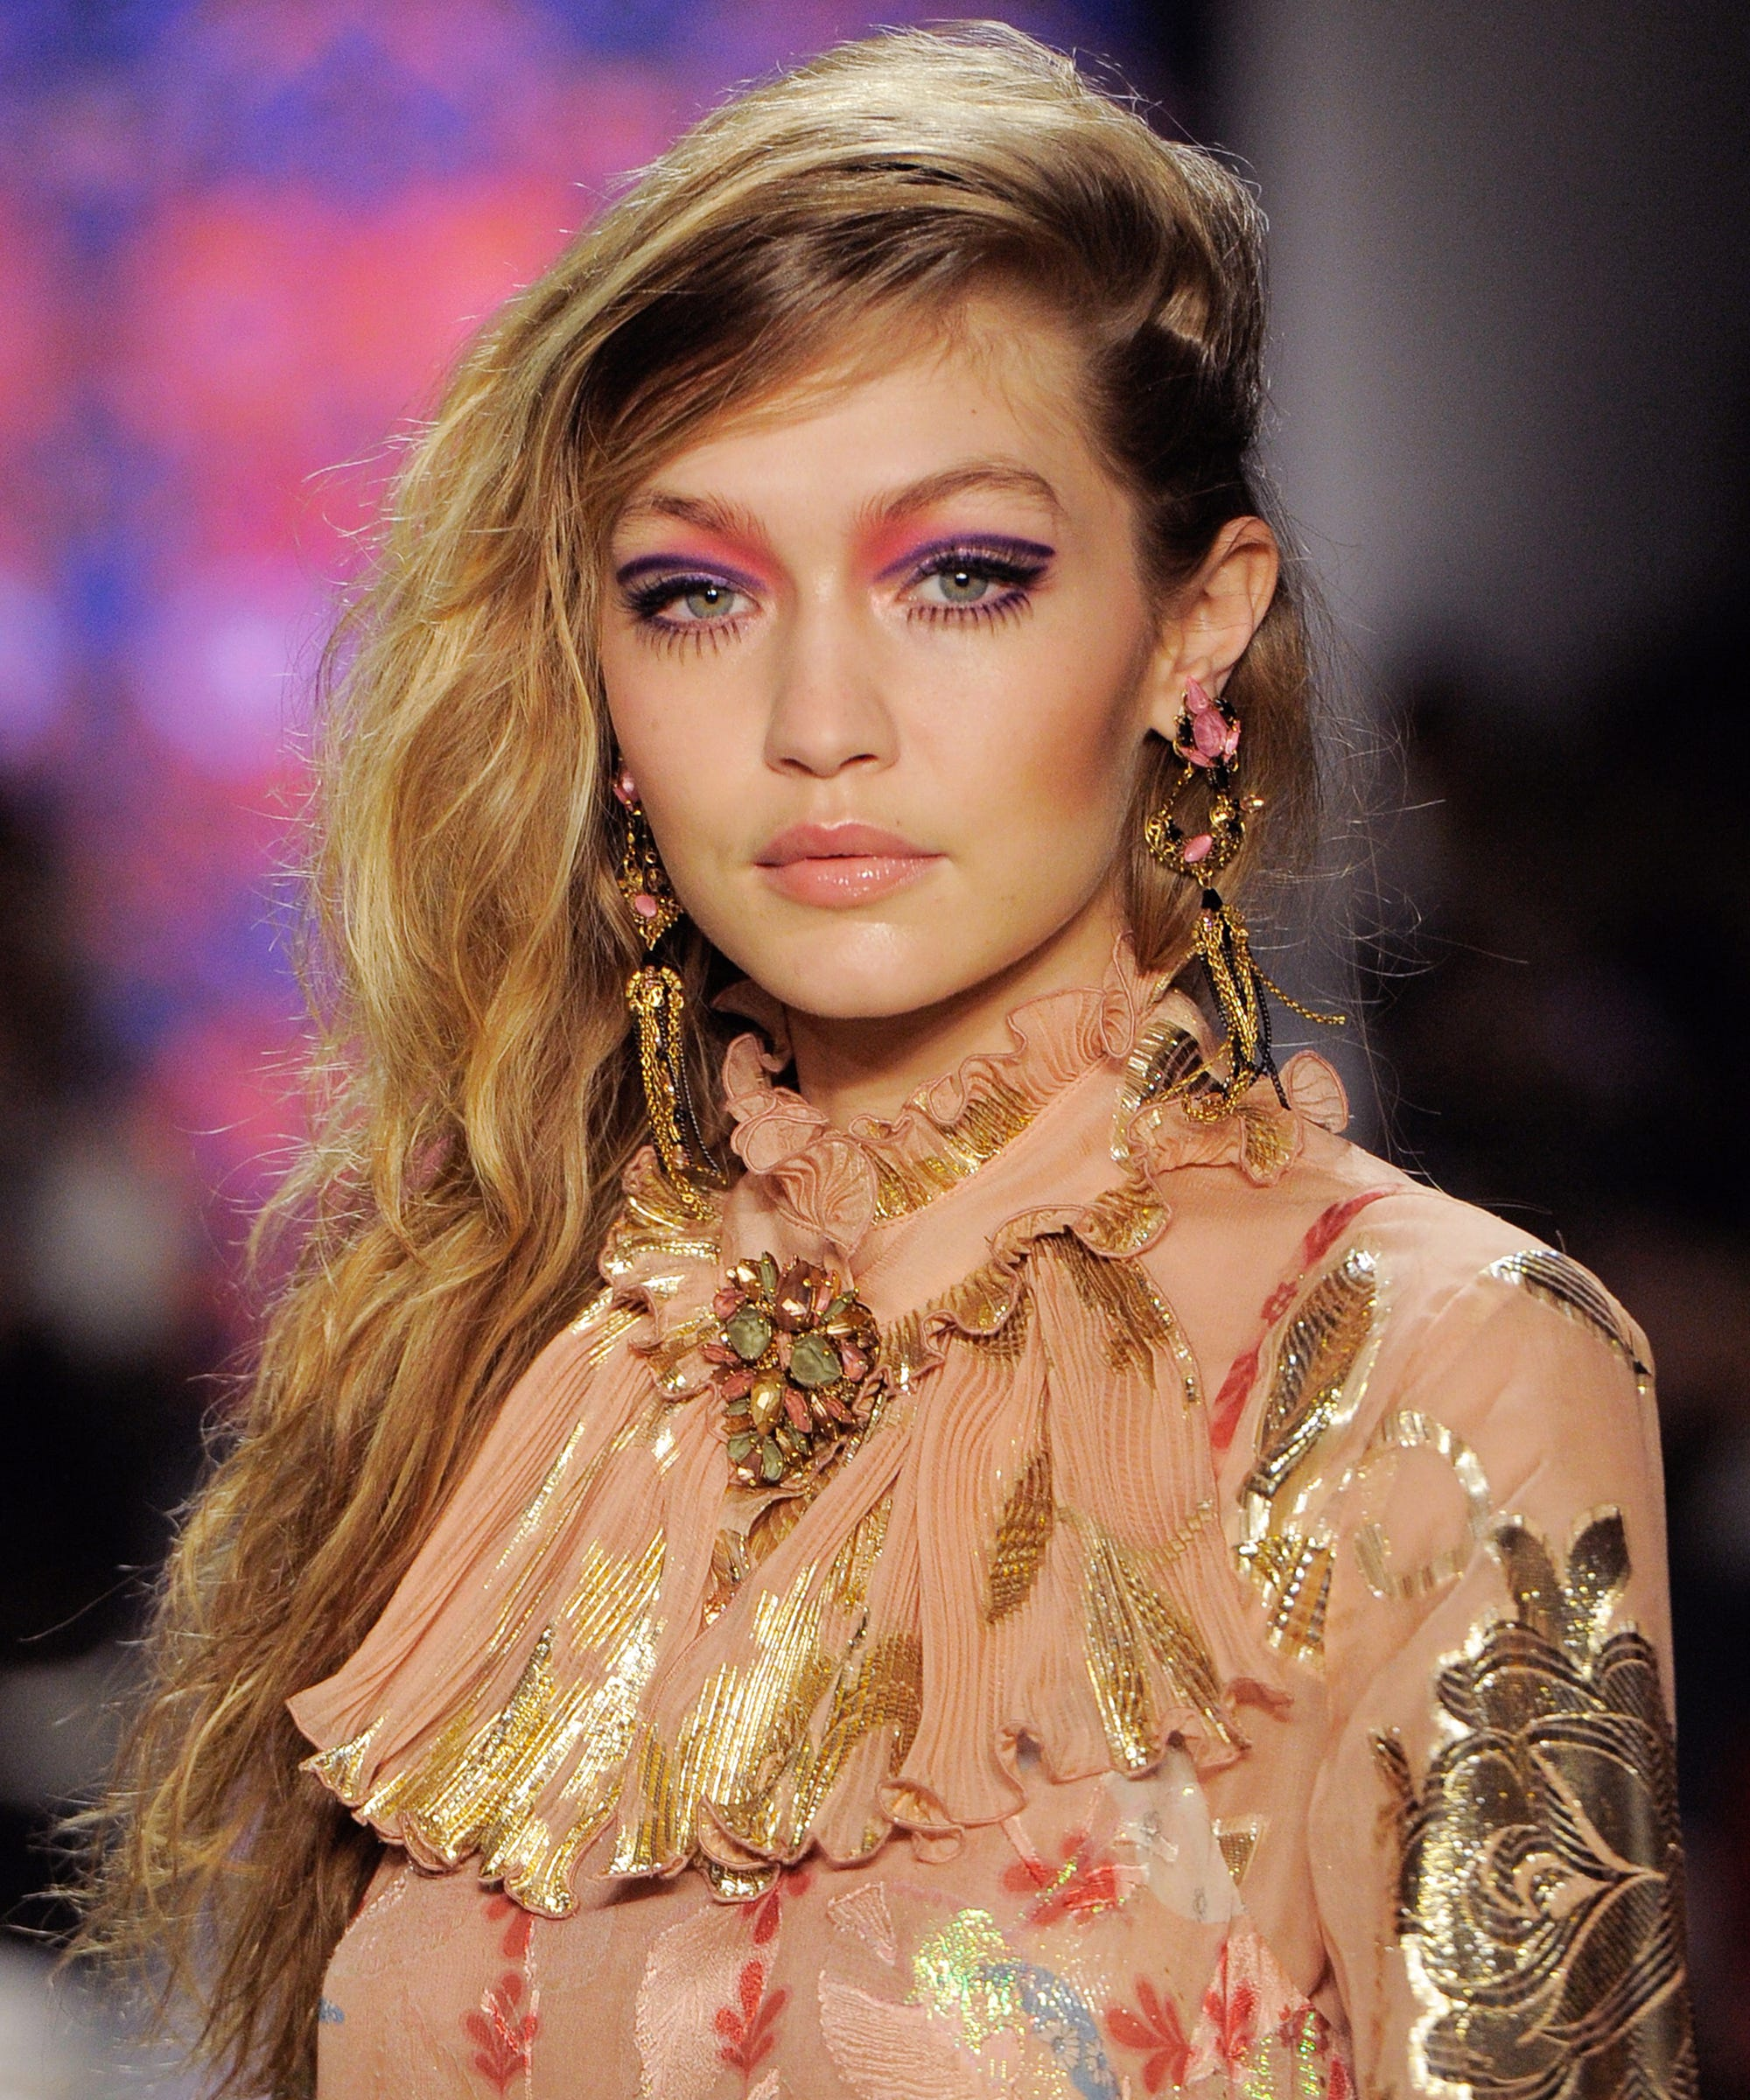 Forum on this topic: Discover the 3 catwalk-inspired hair looks you'll , discover-the-3-catwalk-inspired-hair-looks-youll/